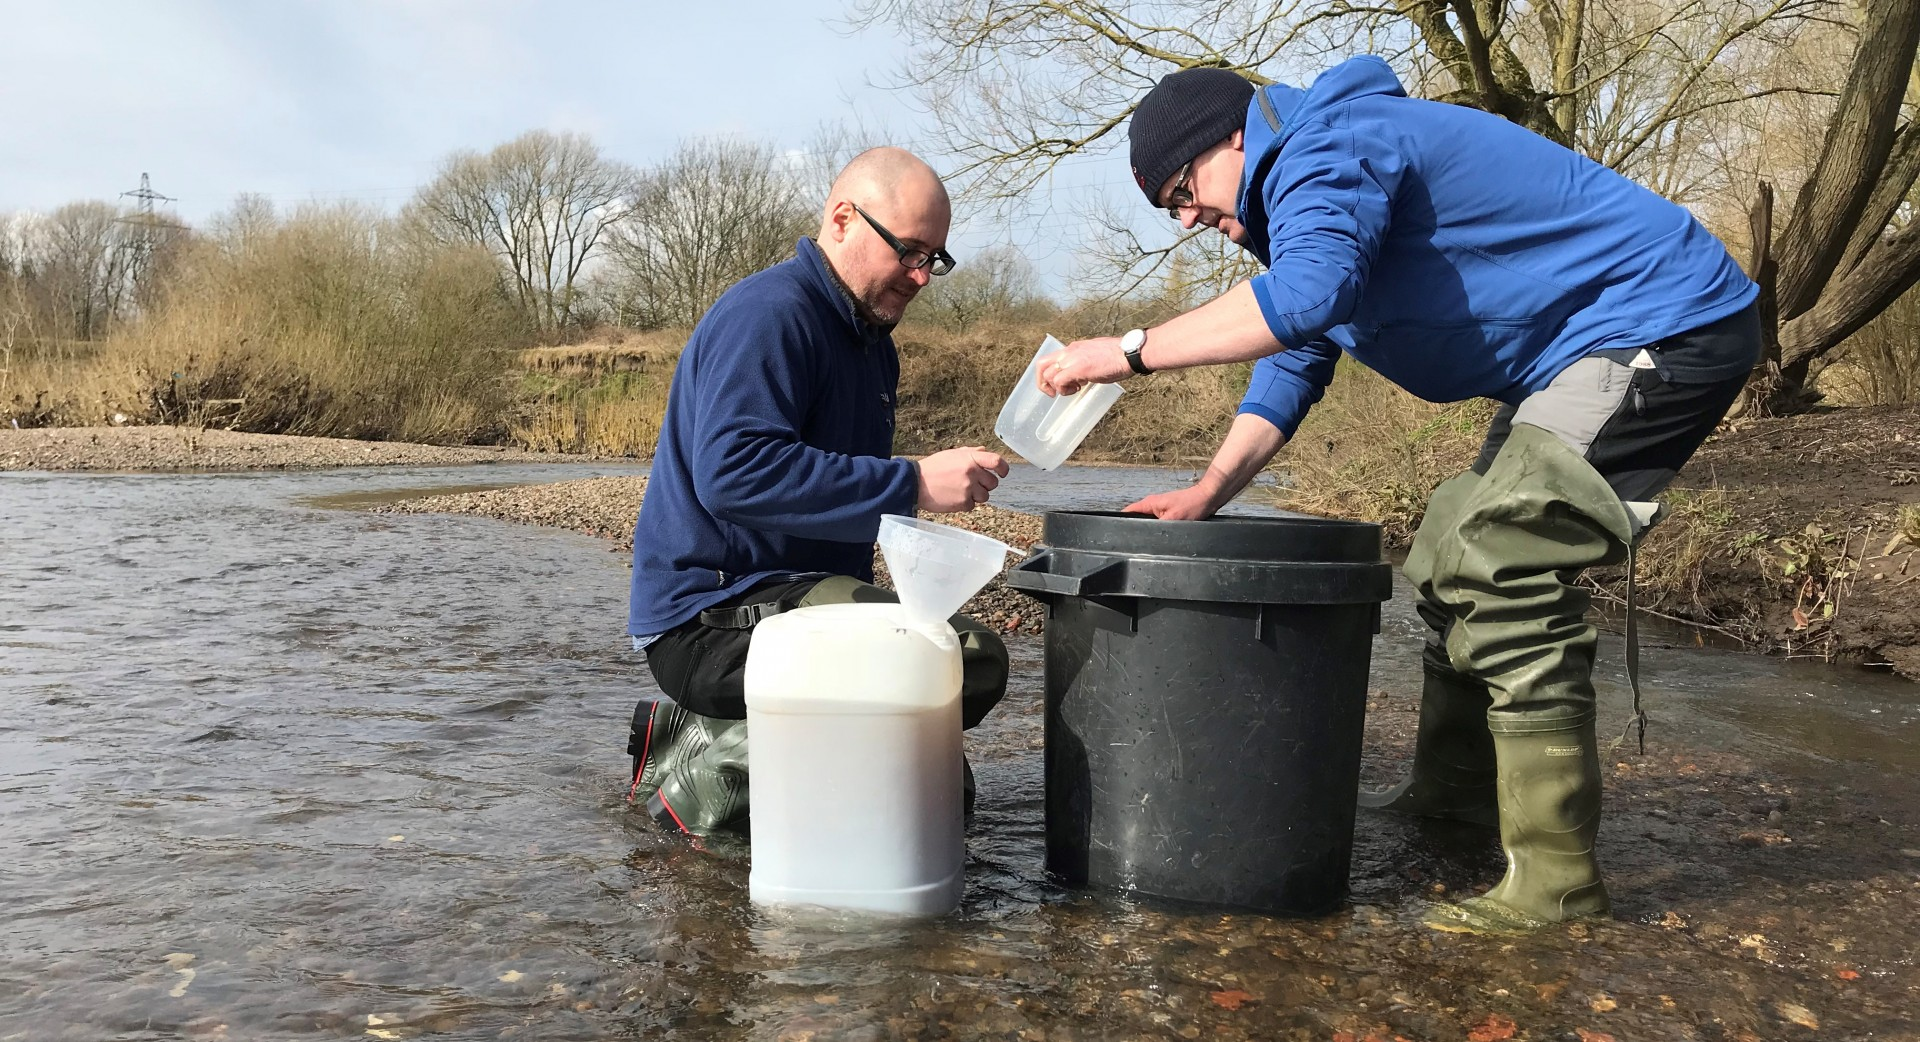 Manchester river has highest level of microplastics